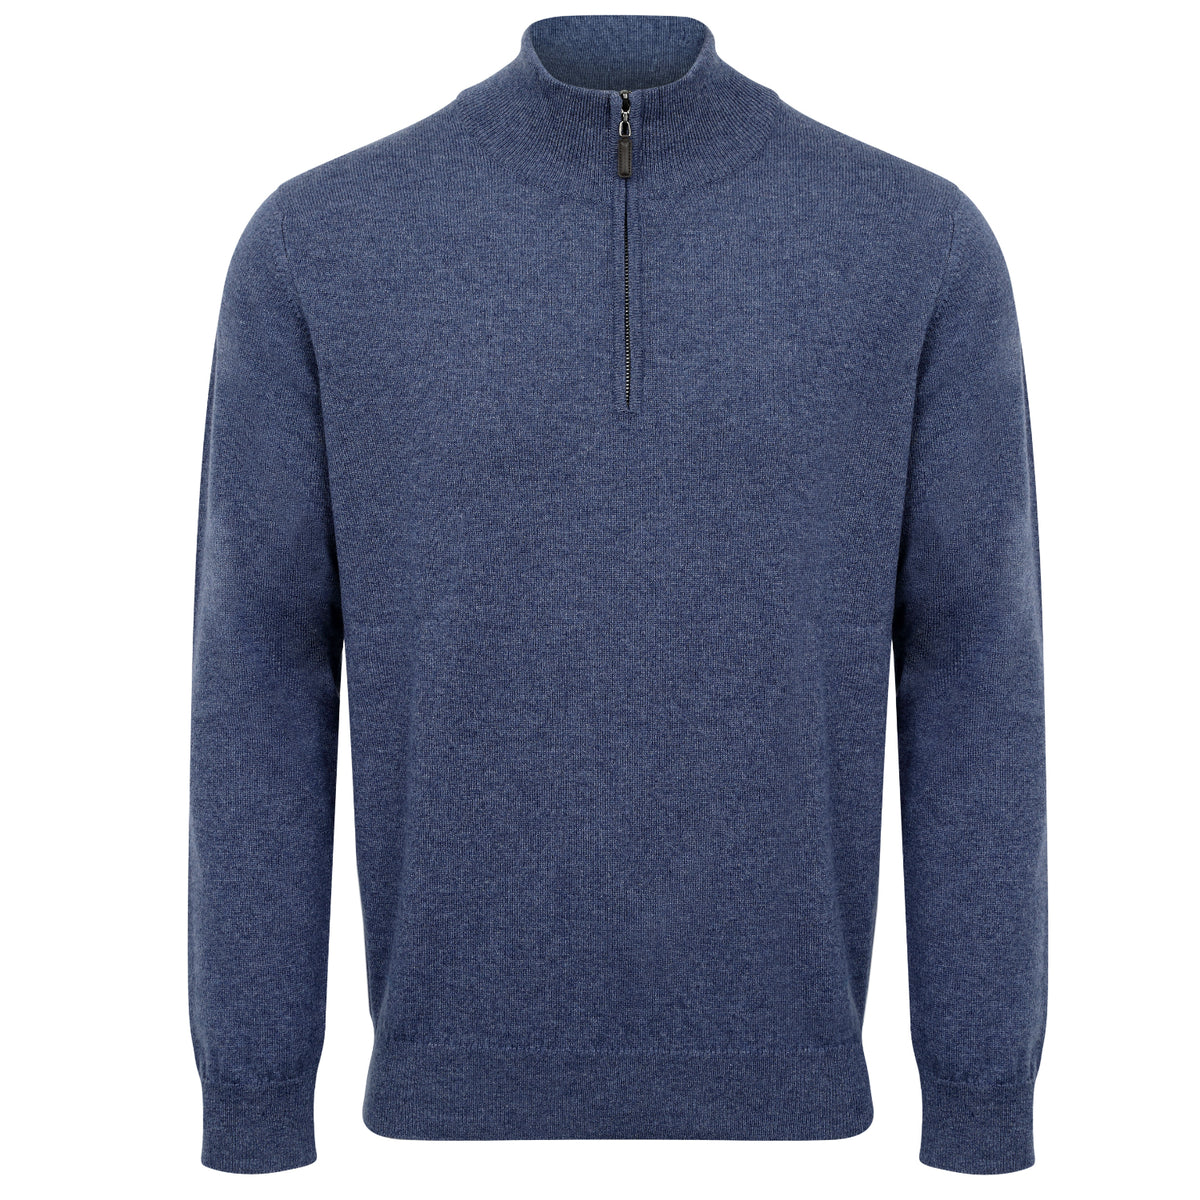 Johnstons of Elgin | Mens 2-Ply Cashmere Zip Turtle Neck | Blue | Shop now at The Cashmere Choice | London